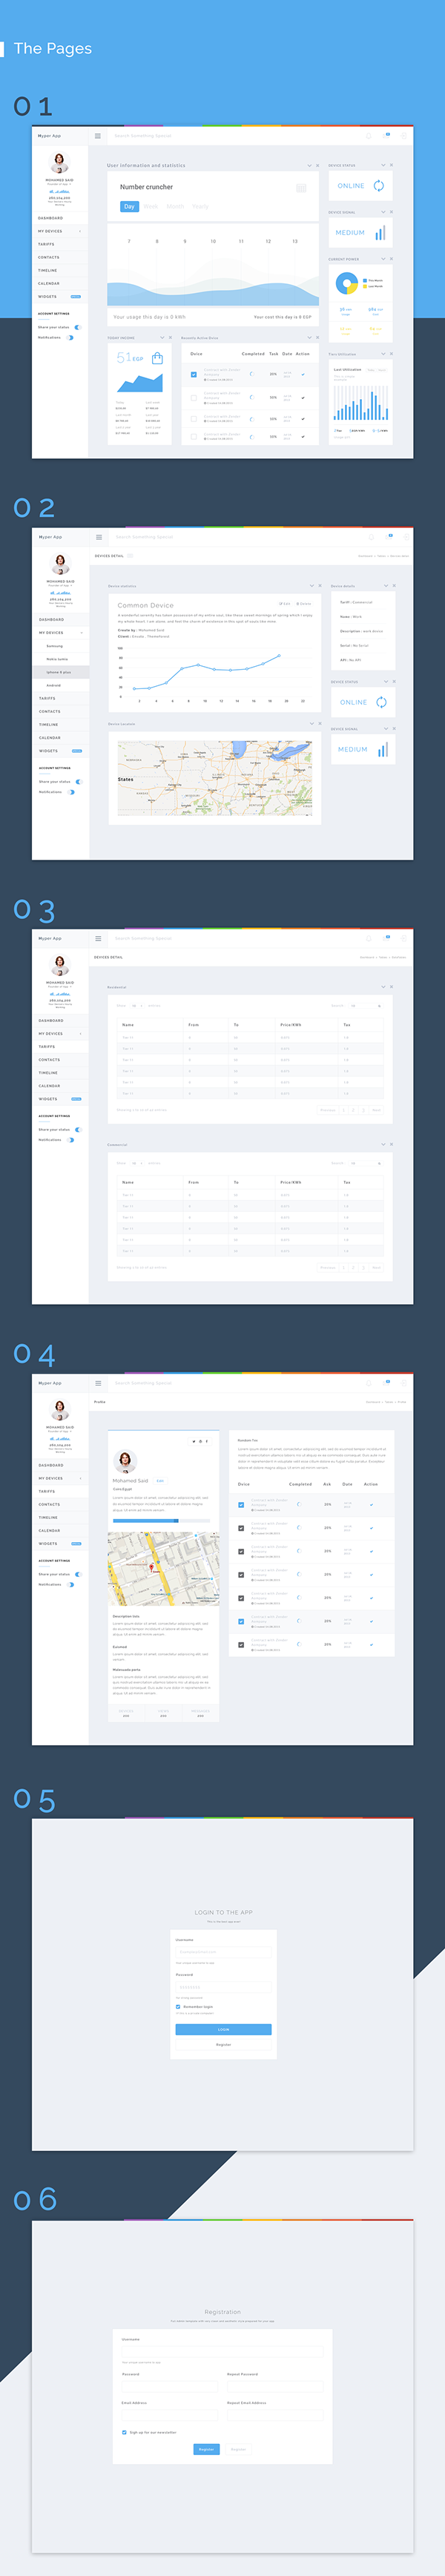 Pin by FX Patrick Ryanto on User Interface | Pinterest | Ui ux, Ui ...